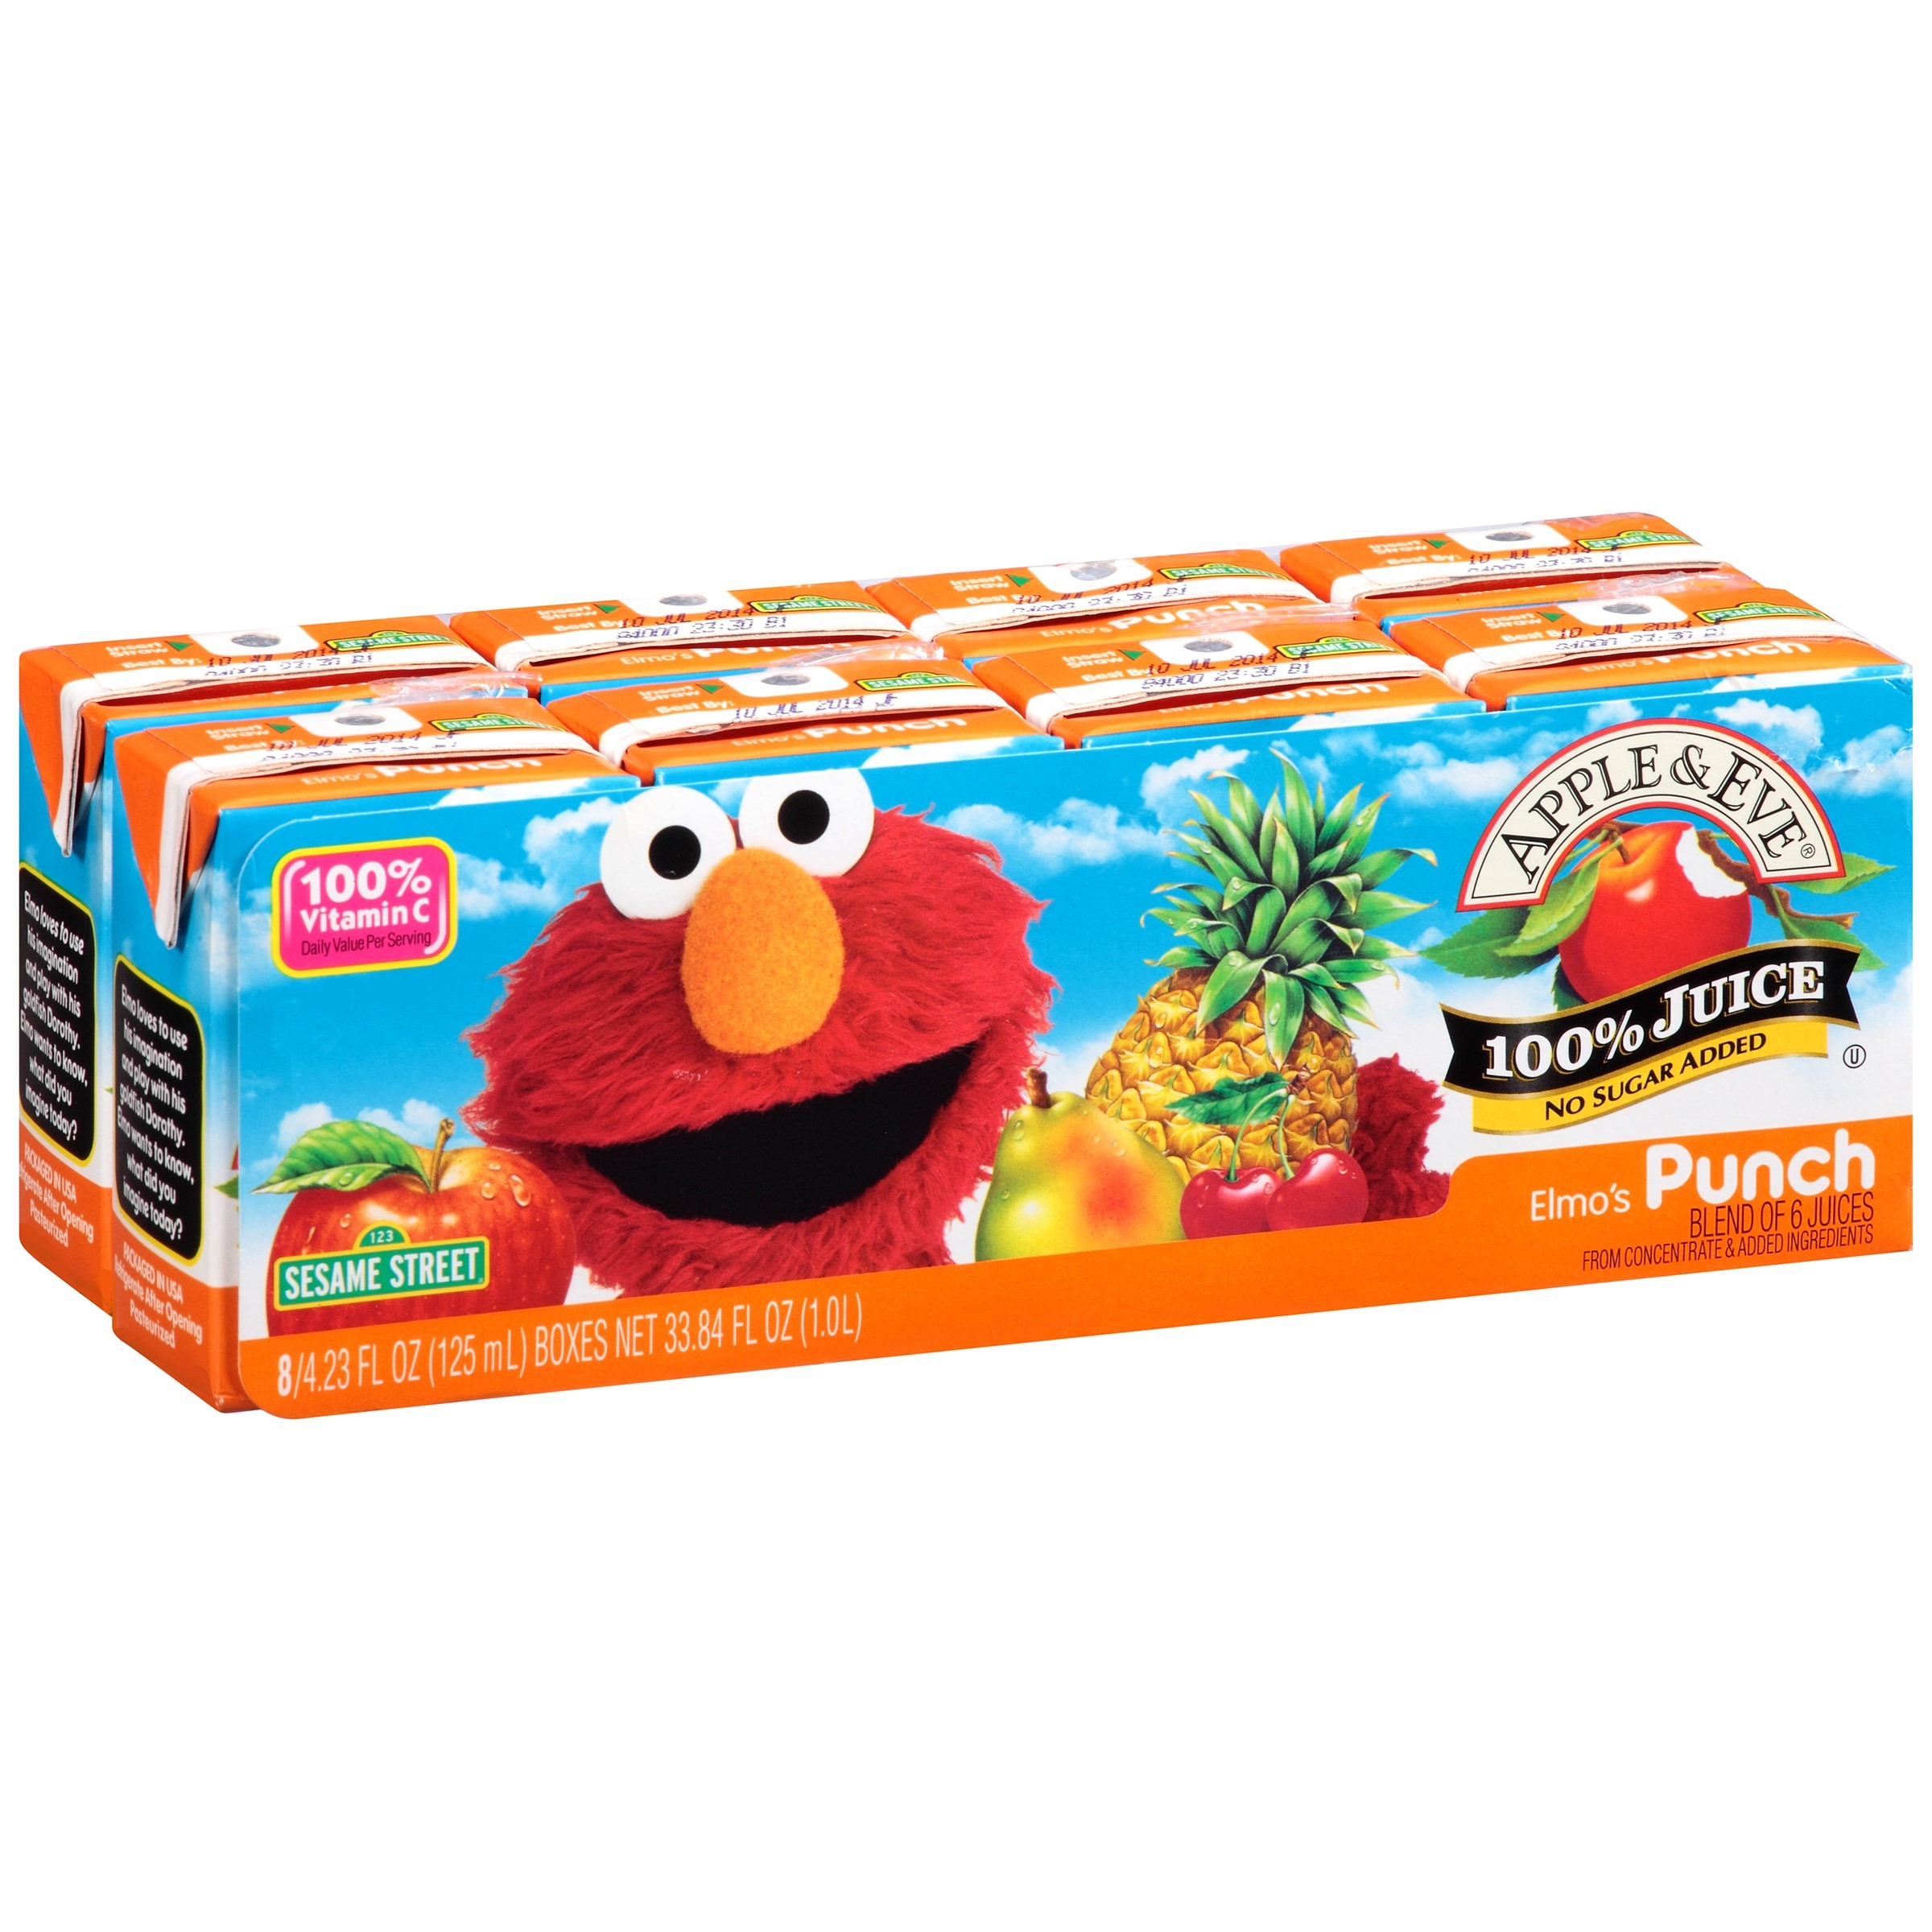 Apple & Eve Sesame Street 100% Juice, Elmo's Punch, 4.23 Fl Oz, 8 Count